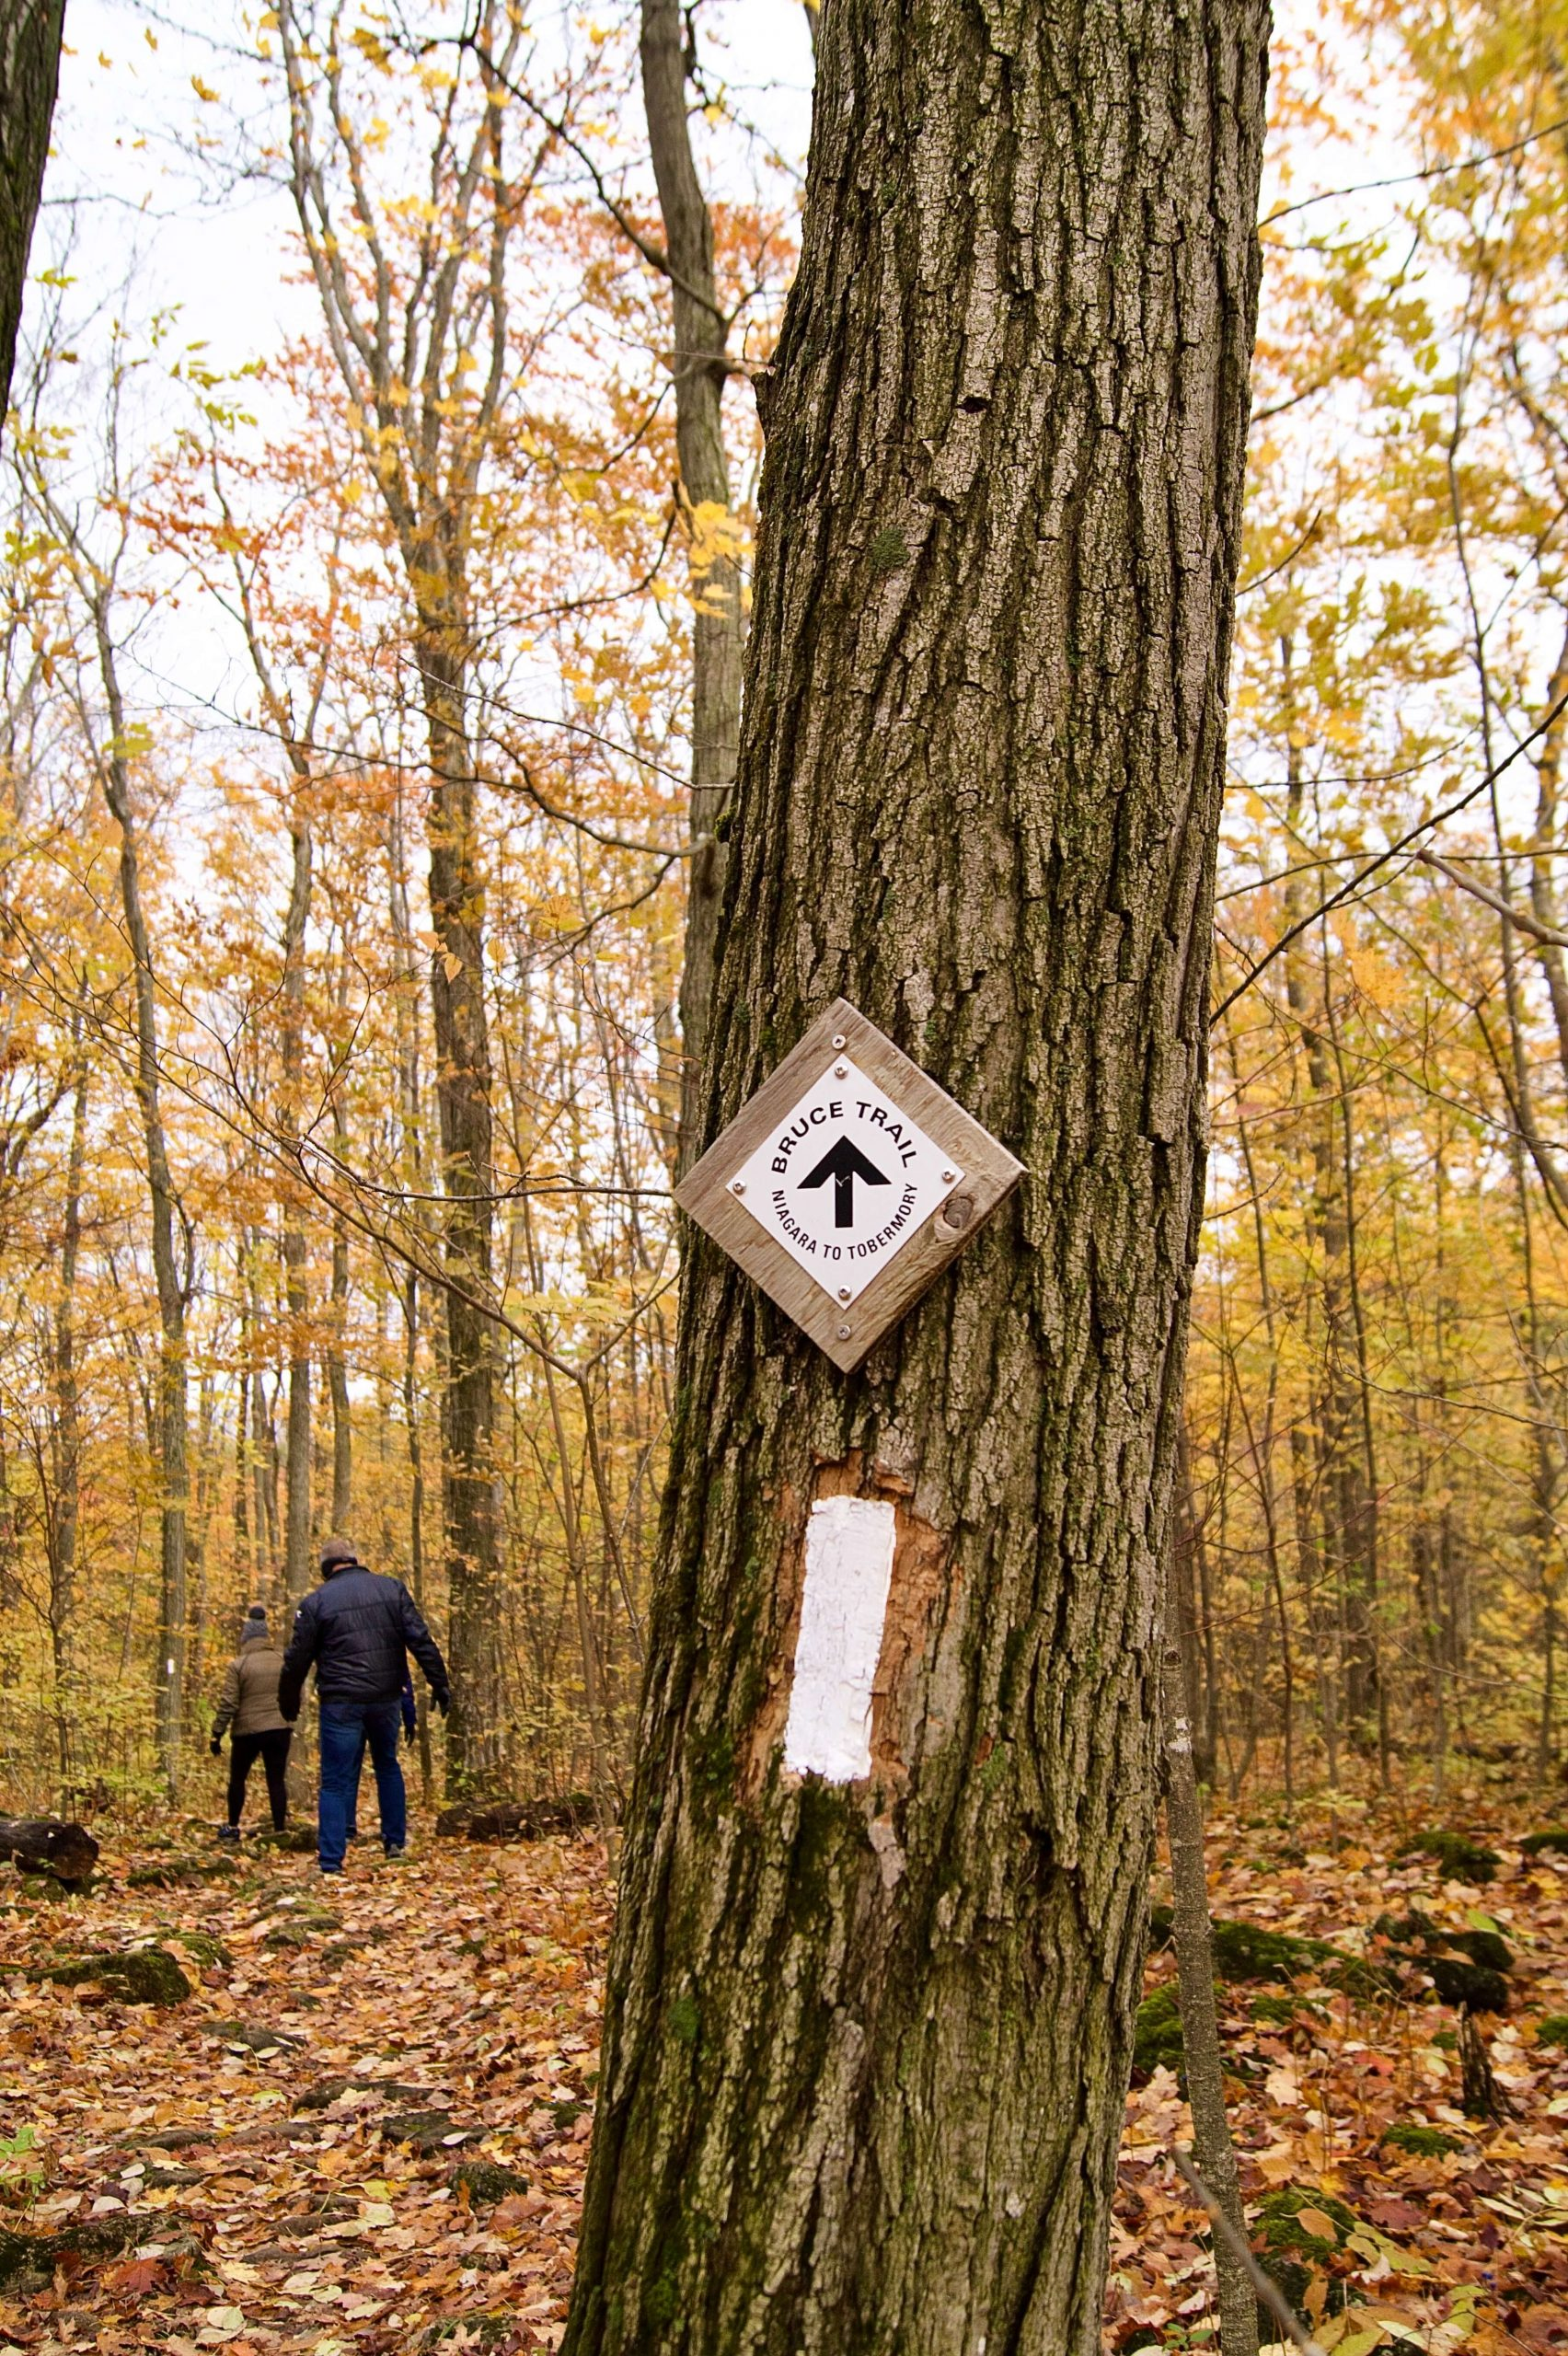 Bruce Trail - Nottawasaga Lookout Section in the fall